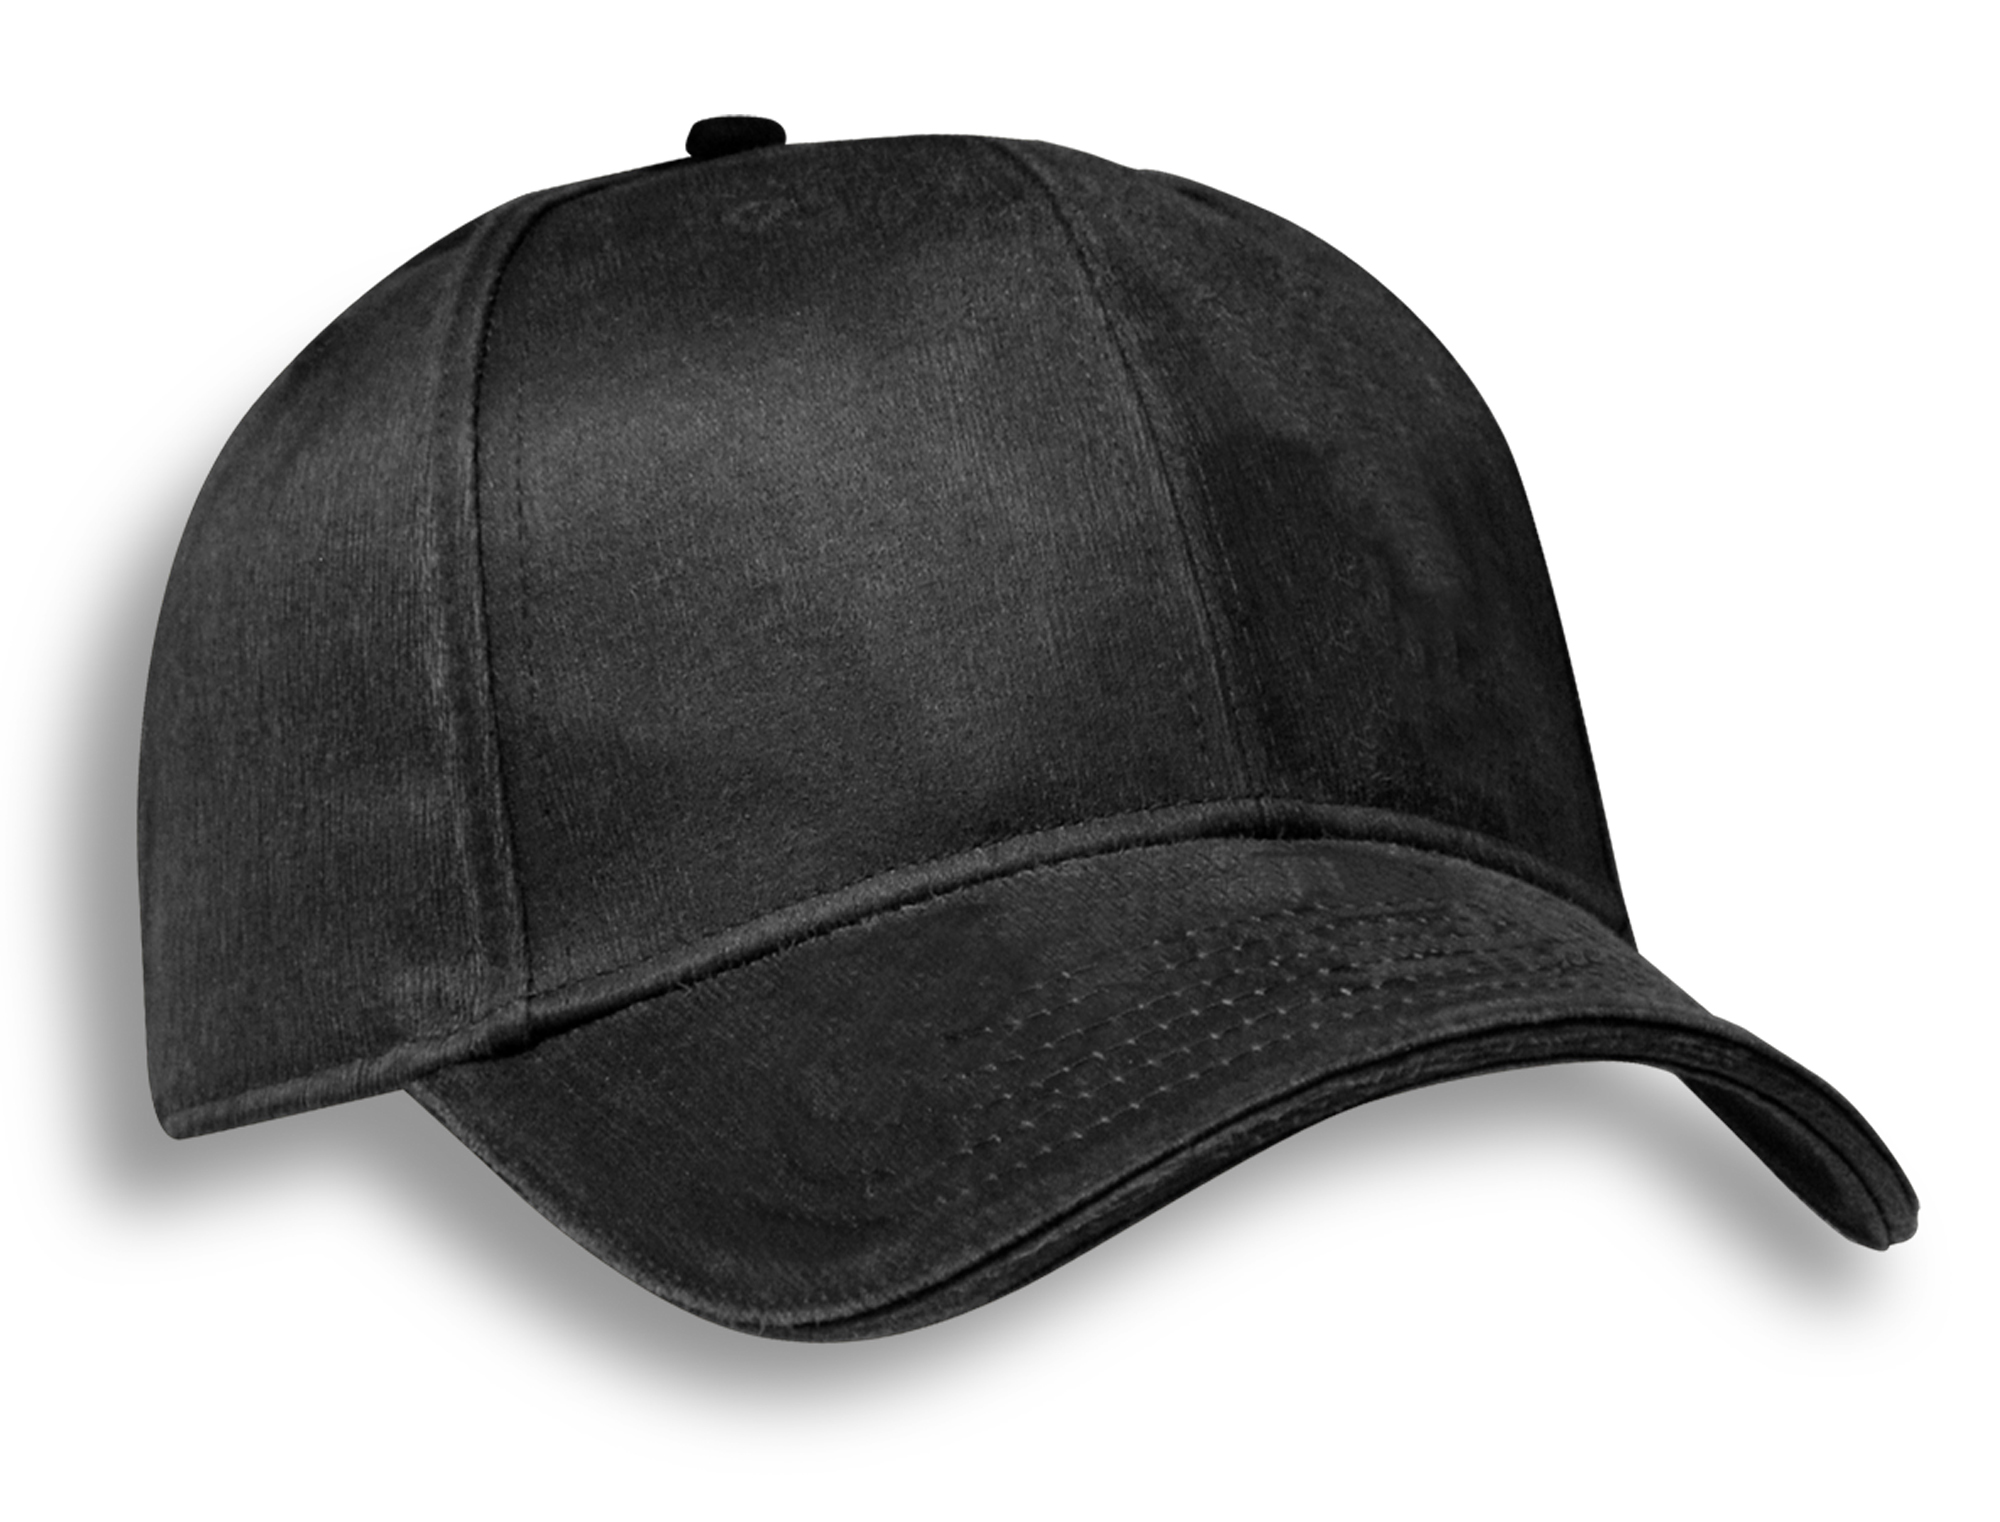 bba5f21c32a Structured Washed Coated Cotton Cap